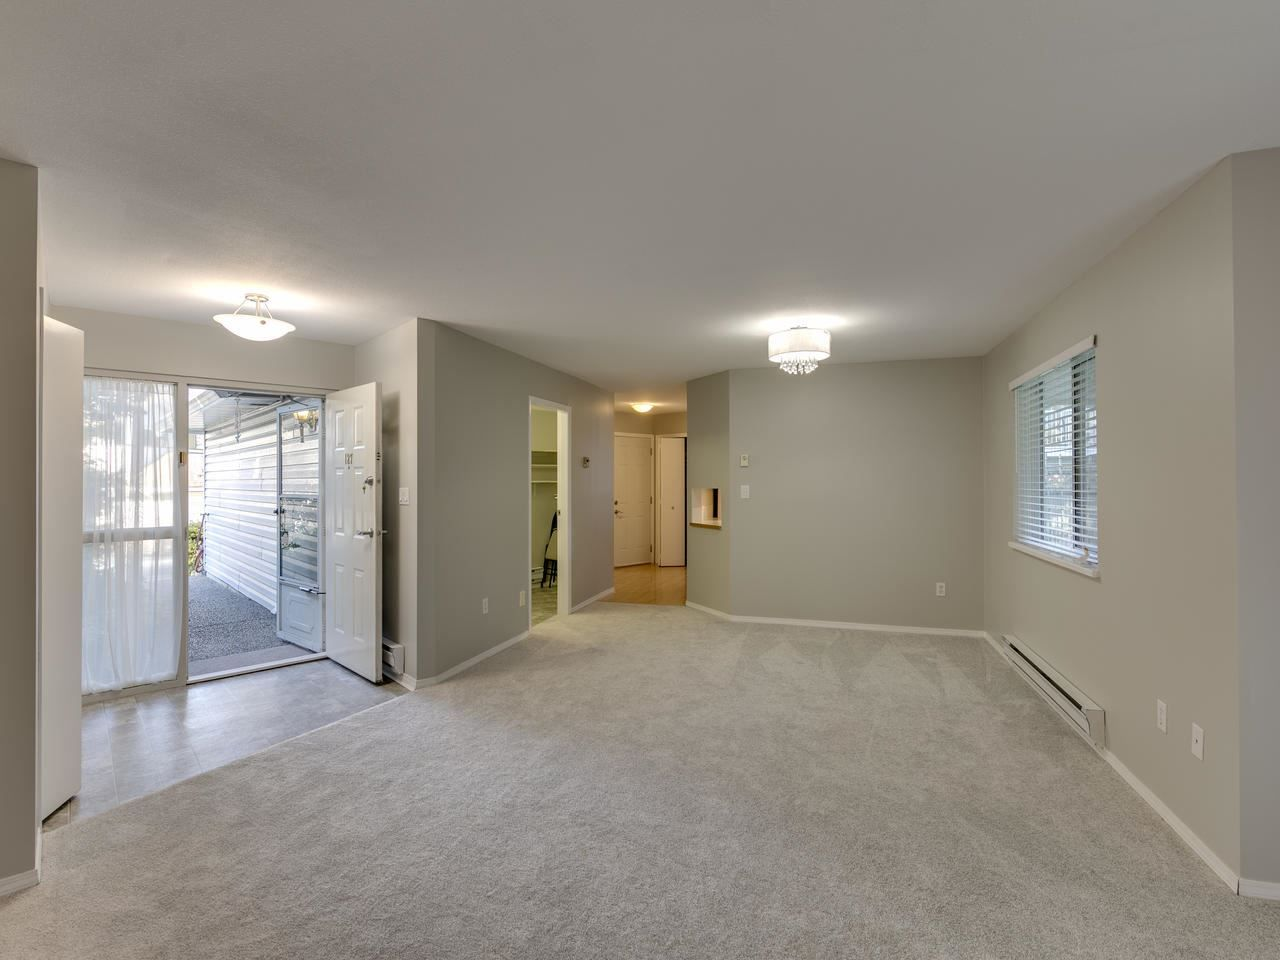 """Photo 17: Photos: 127 22555 116 Avenue in Maple Ridge: East Central Townhouse for sale in """"HILLSIDE"""" : MLS®# R2493046"""